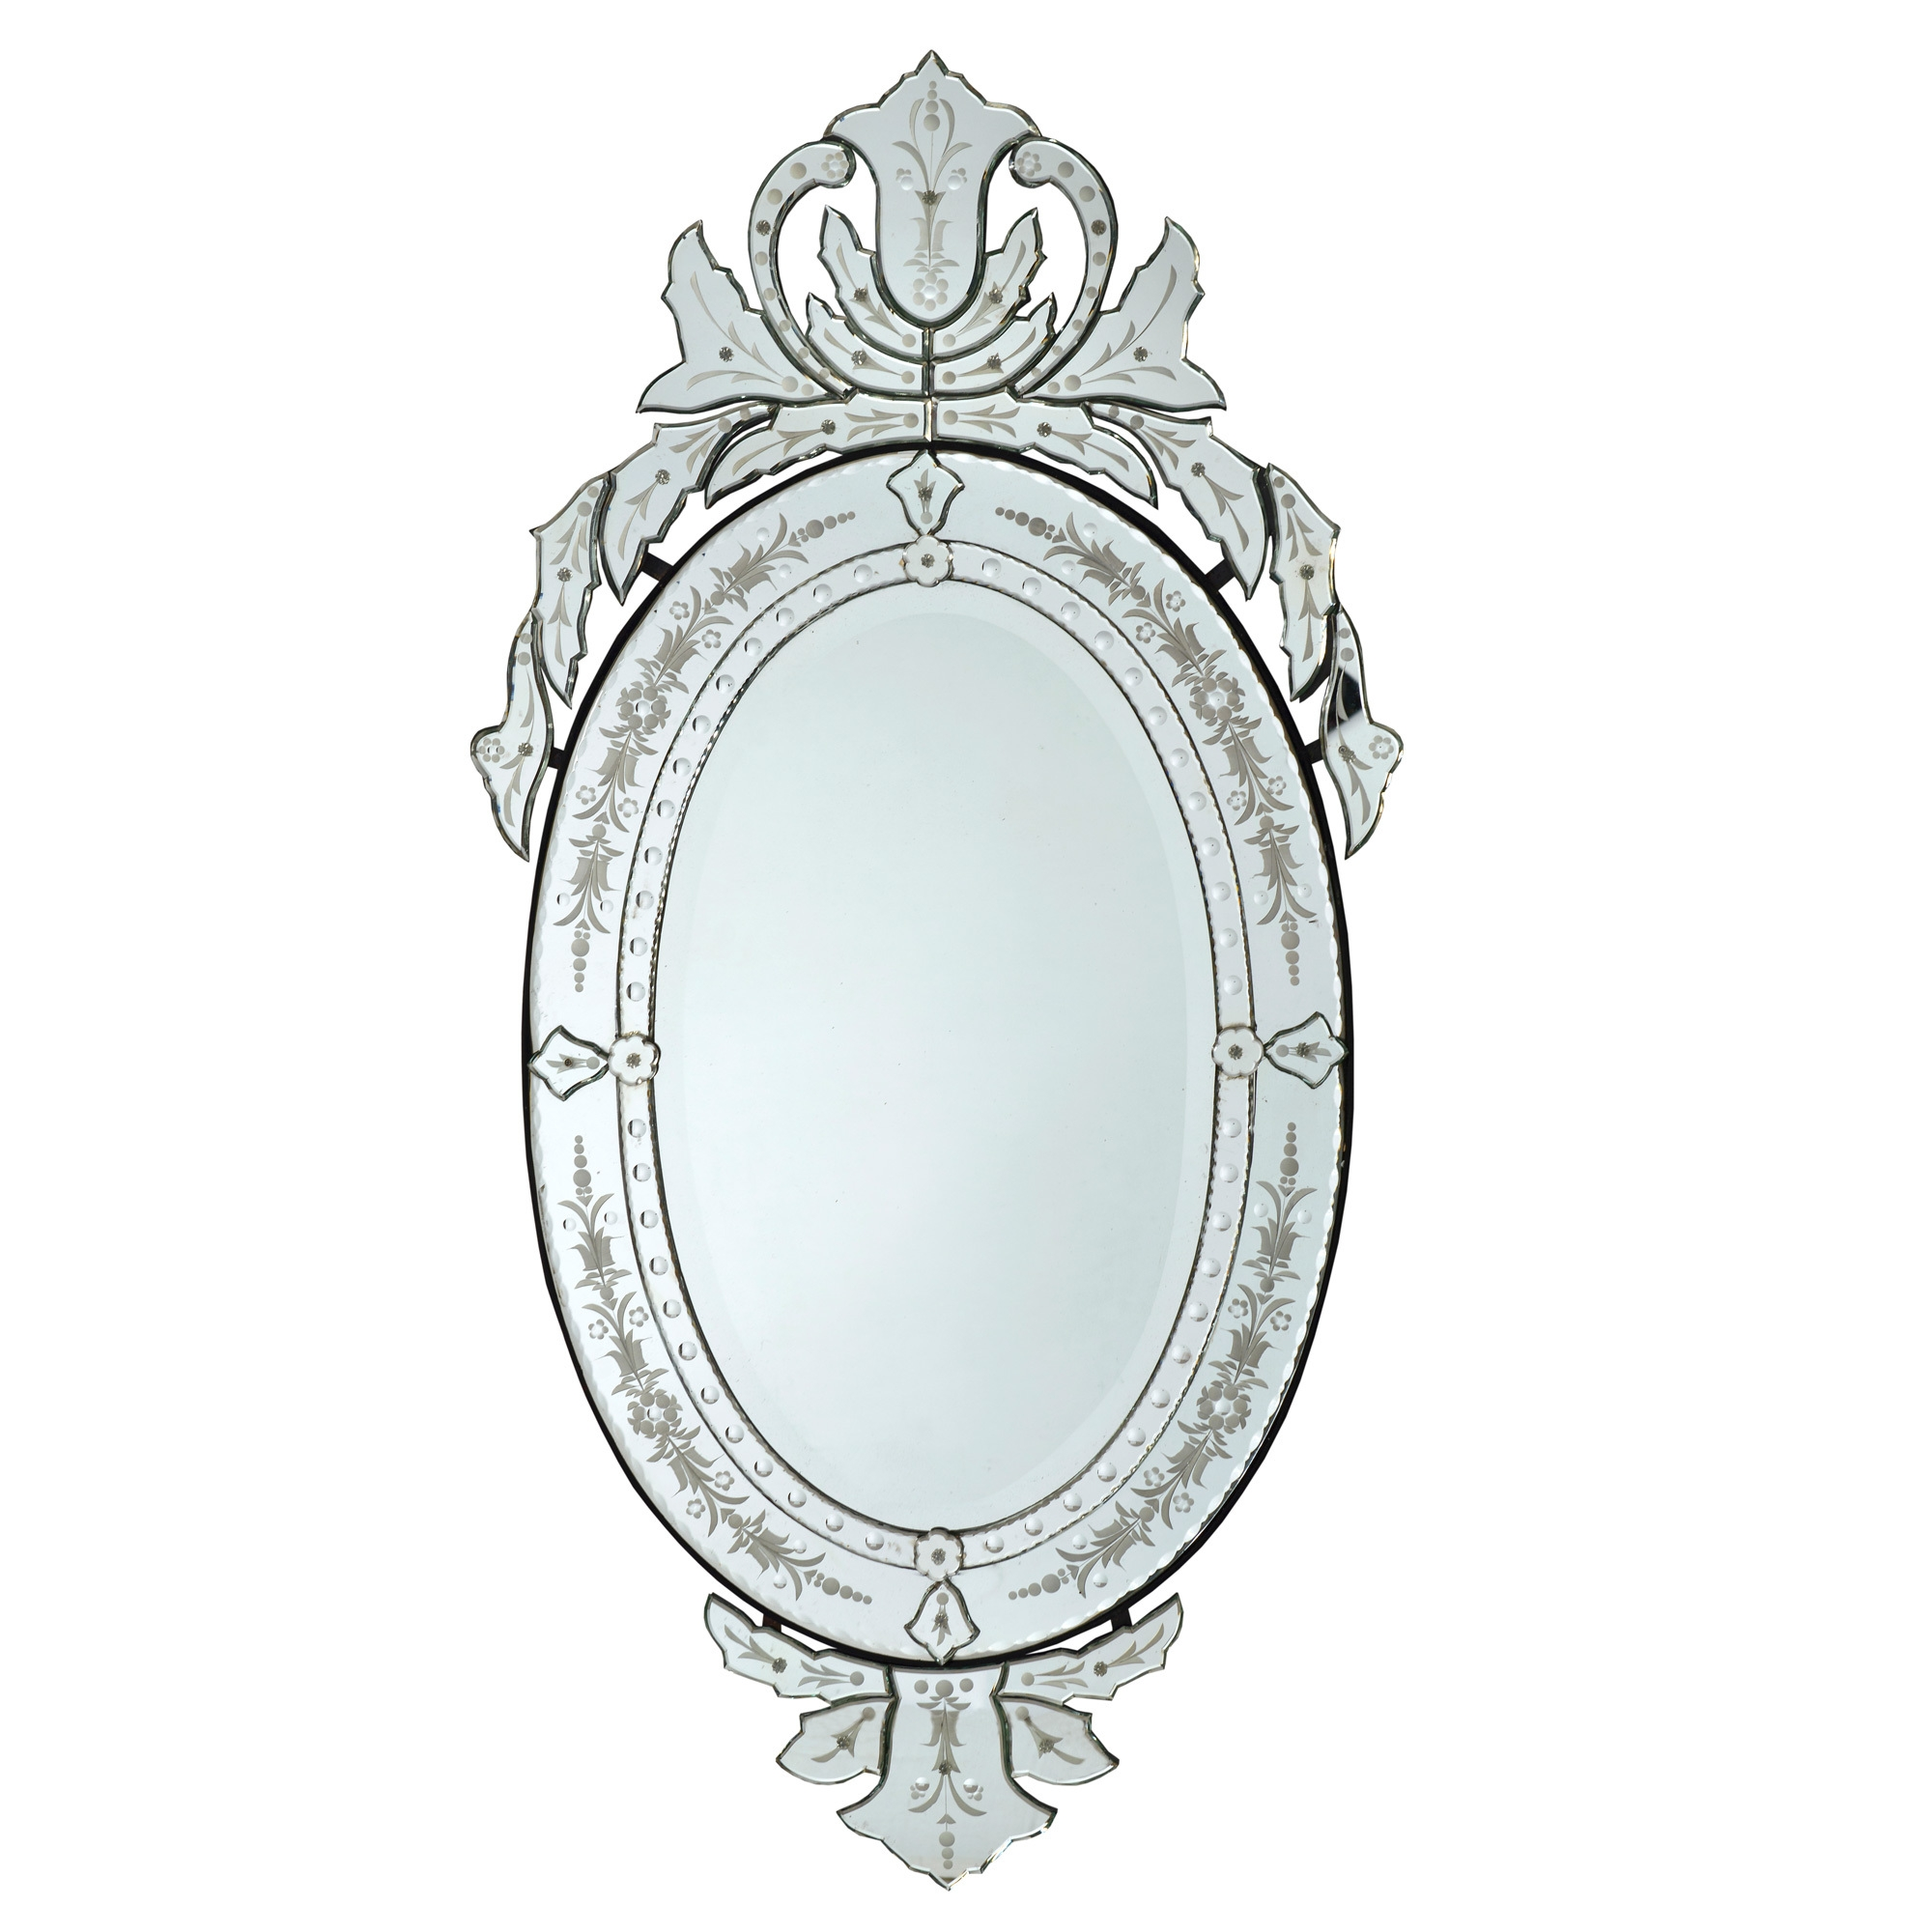 Venetian Etched Oval Wall Mirror